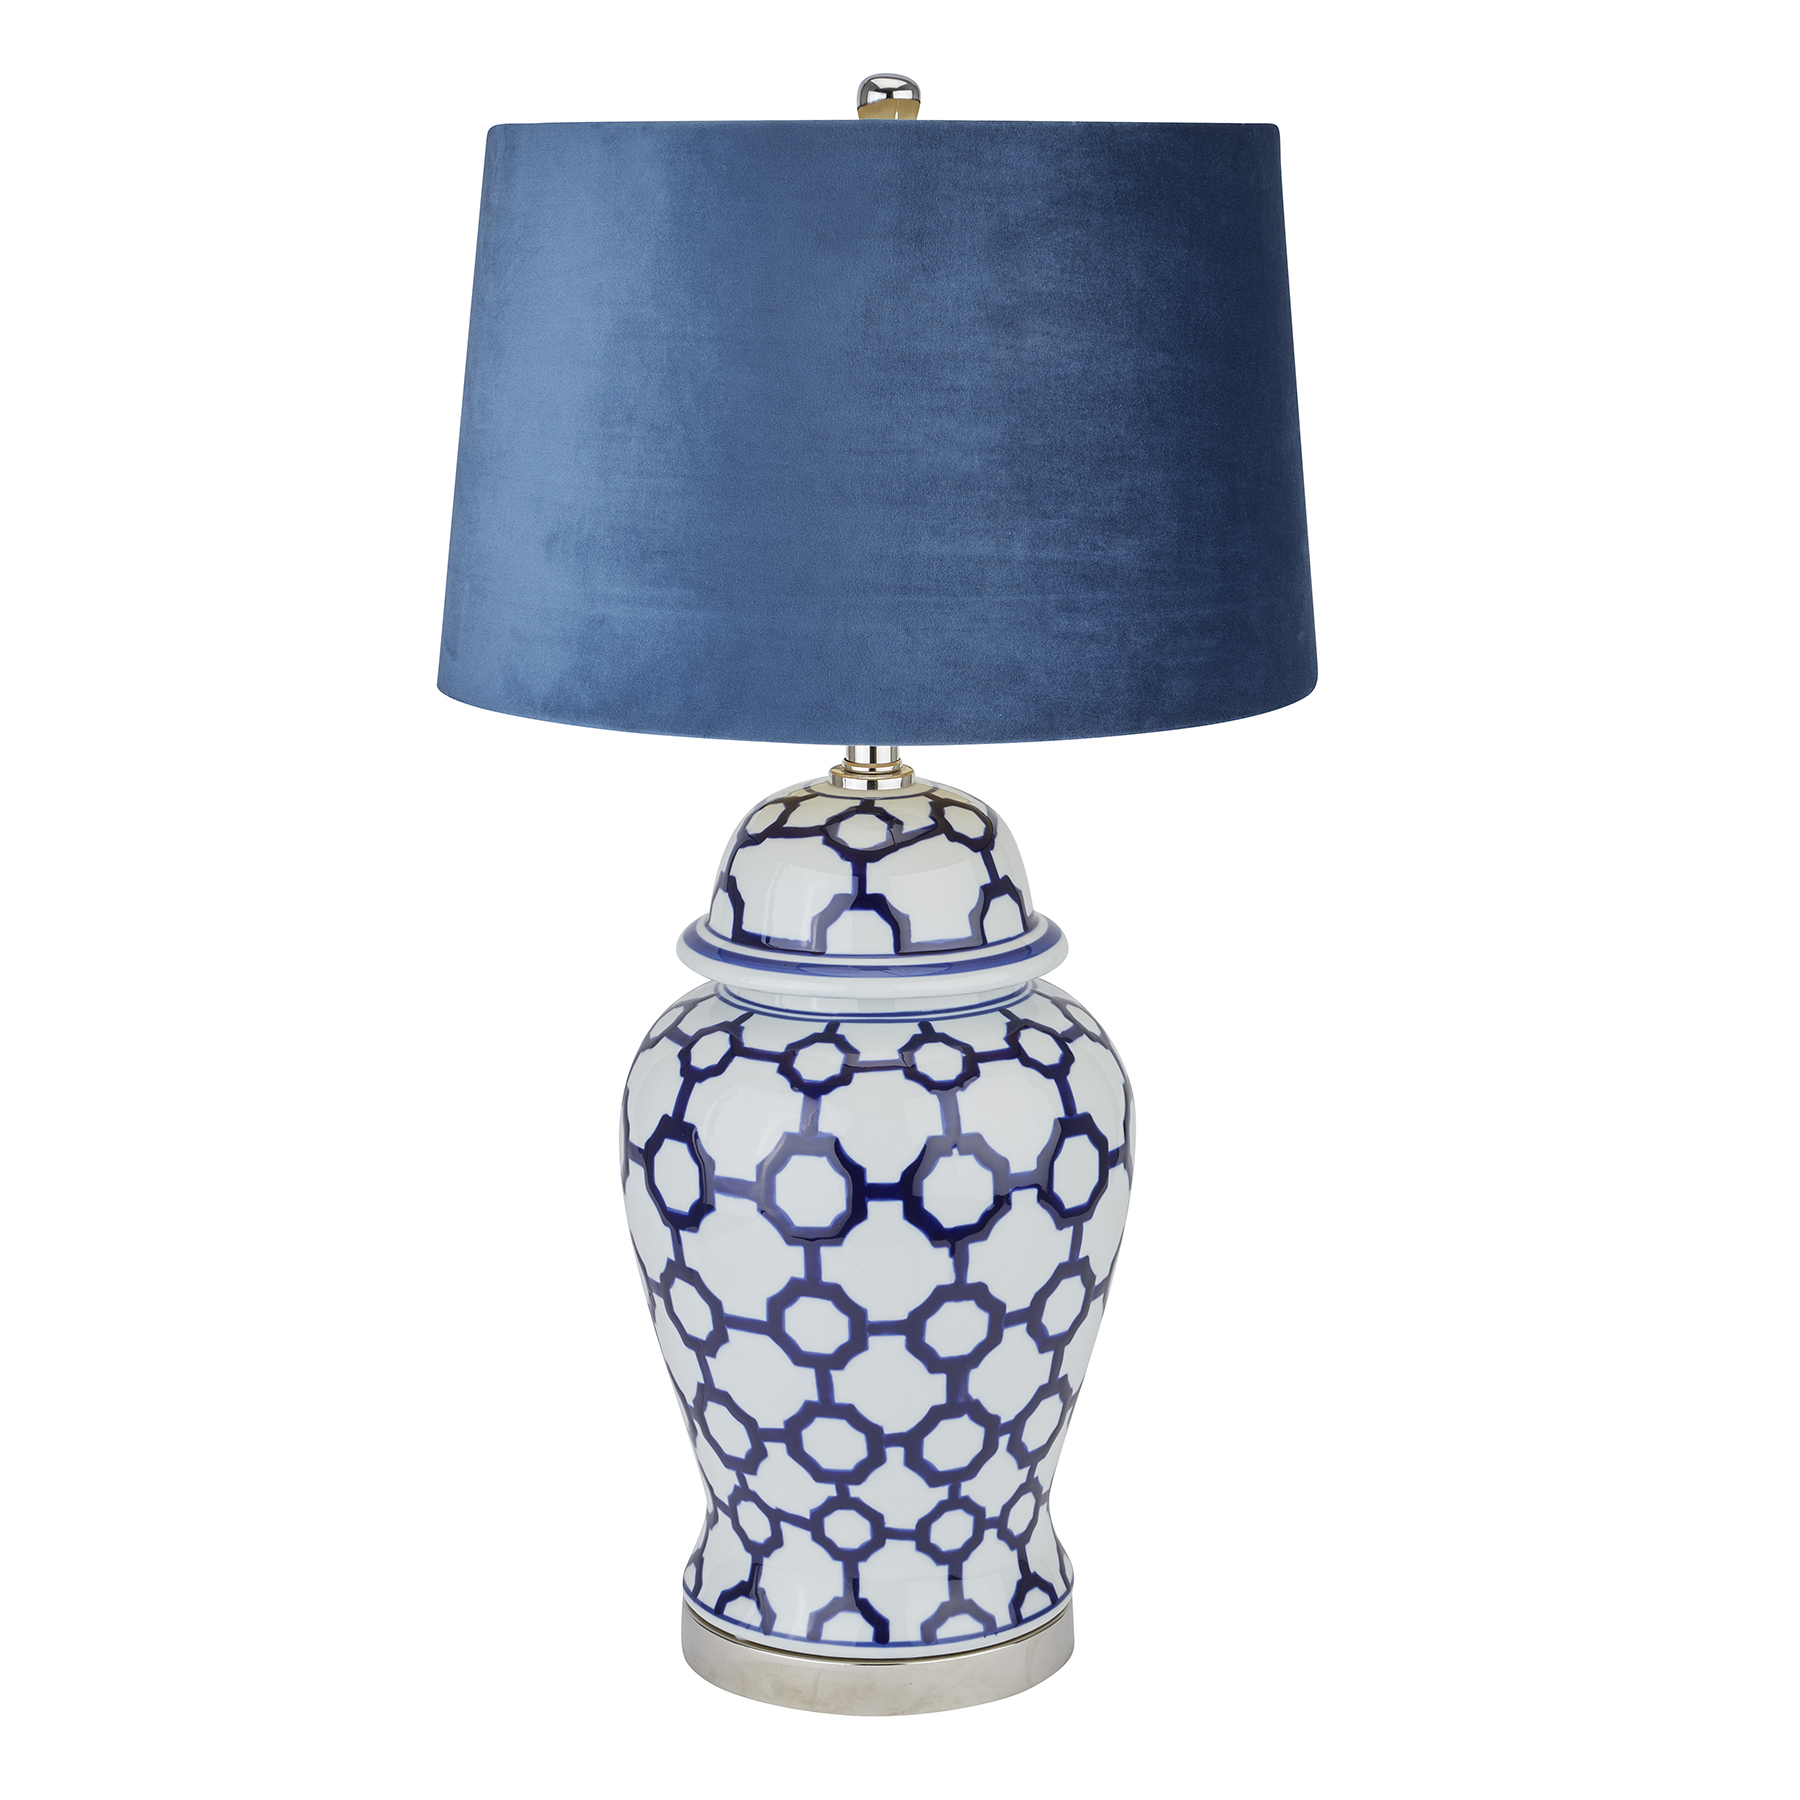 Acanthus Blue And White Ceramic Lamp With Blue Velvet Shade - Image 1